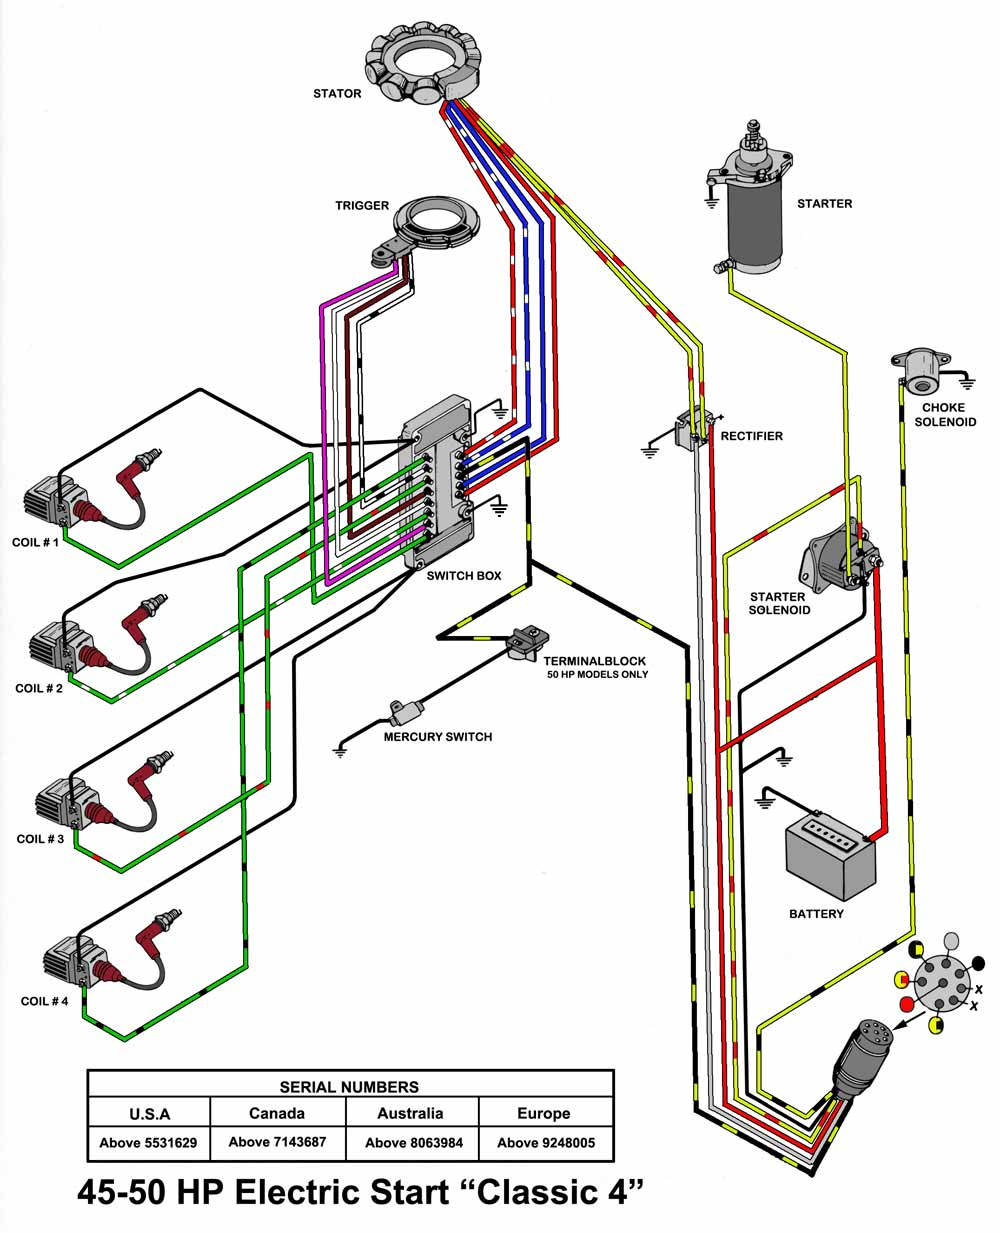 70 hp mercury wiring harness diagram get free image about wiring diagram